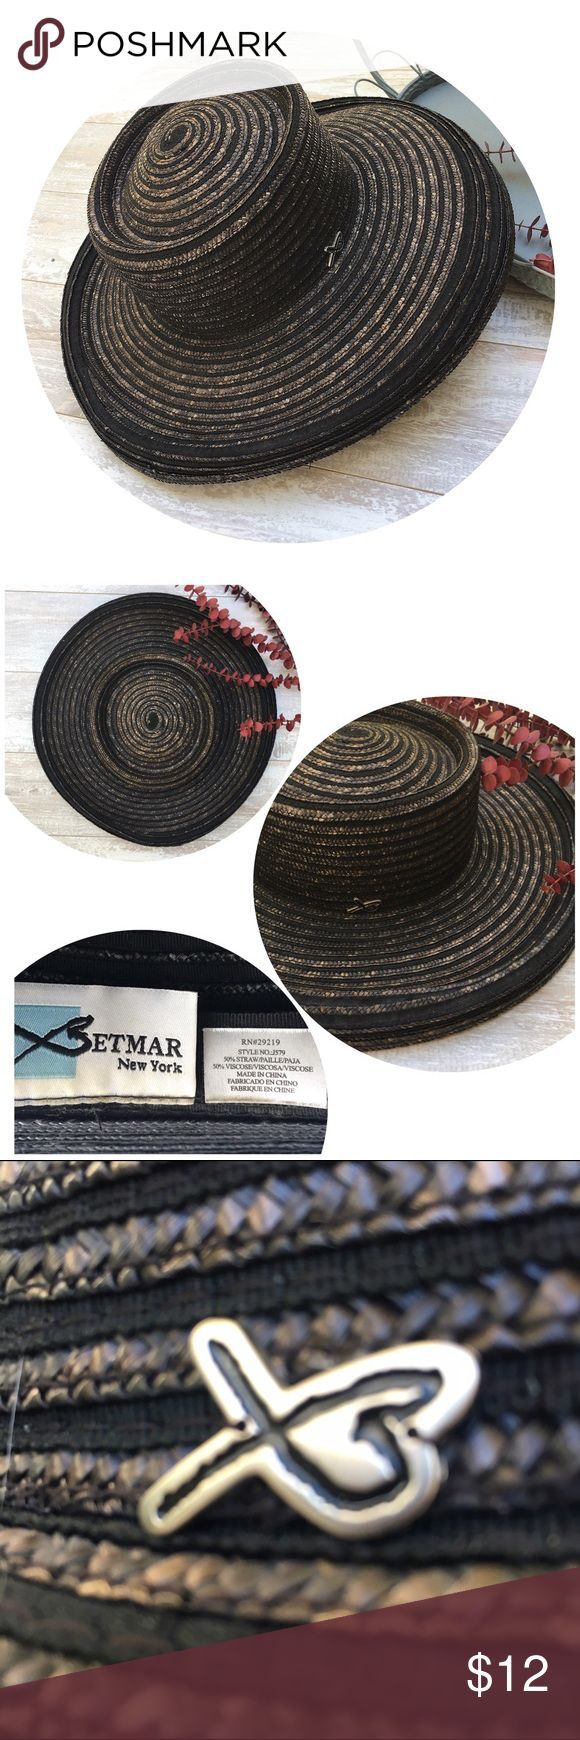 Betmar New York Straw Hat, Lamp Shade(small stain) Straw Sun Hat, fits head measurements from 22 to 23 inches, 50% Straw/50% Viscose, Brim: 3 1/2 inches + 1 1/4inch edge..Crown: 3 1/2 inches, See pic small stain inside band Betmar New York Accessories Hats